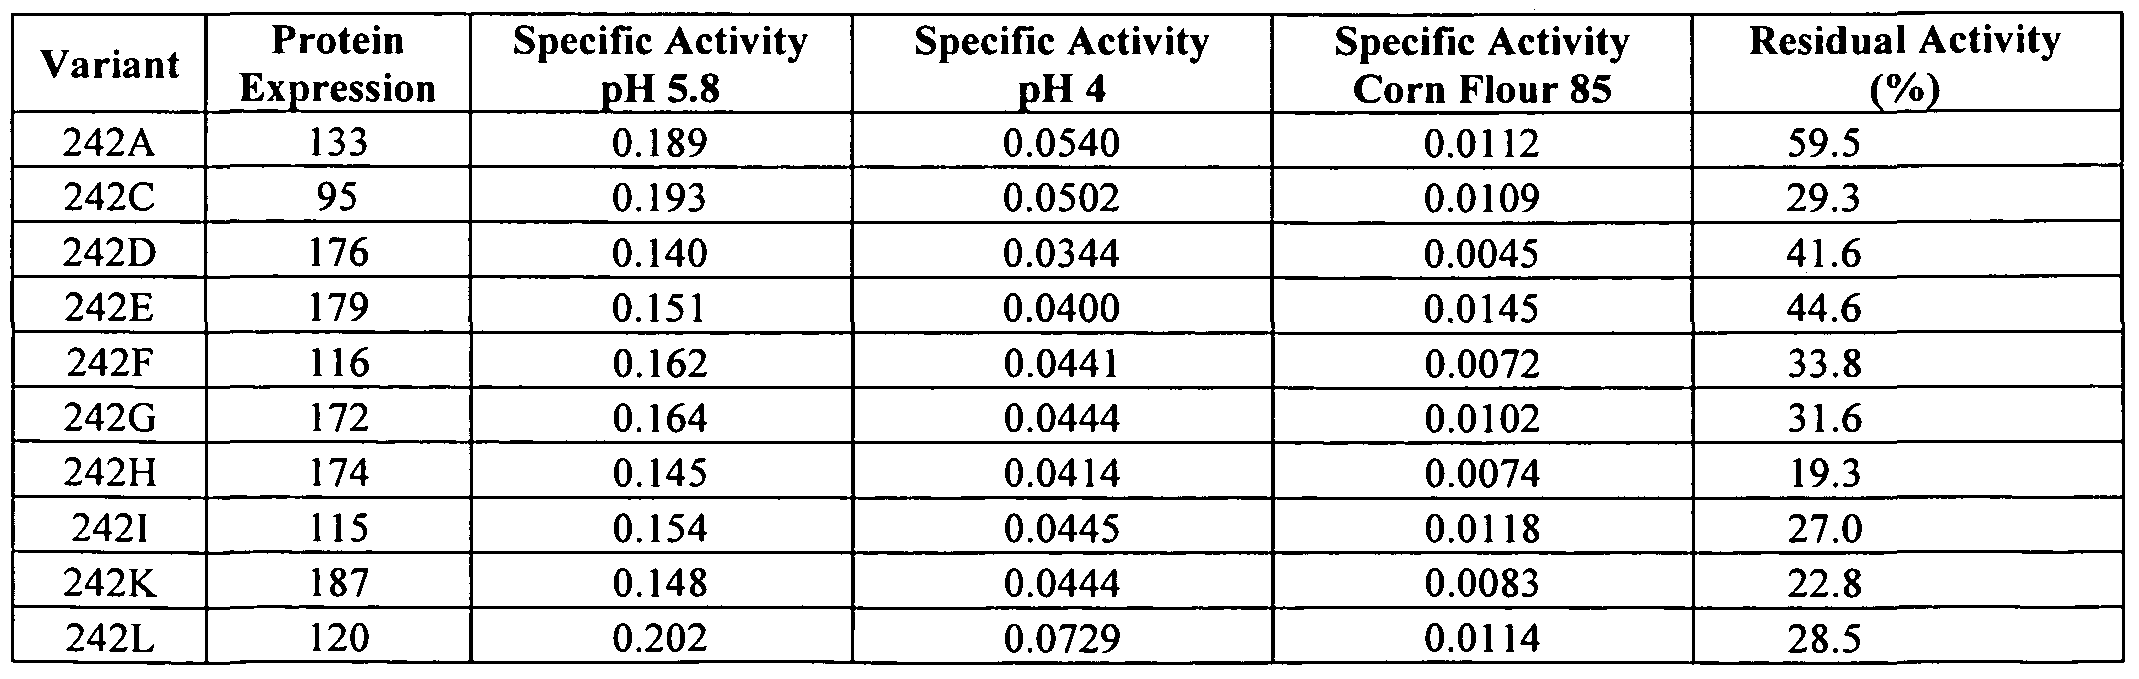 WO2009061381A2 - Alpha-amylase variants with altered